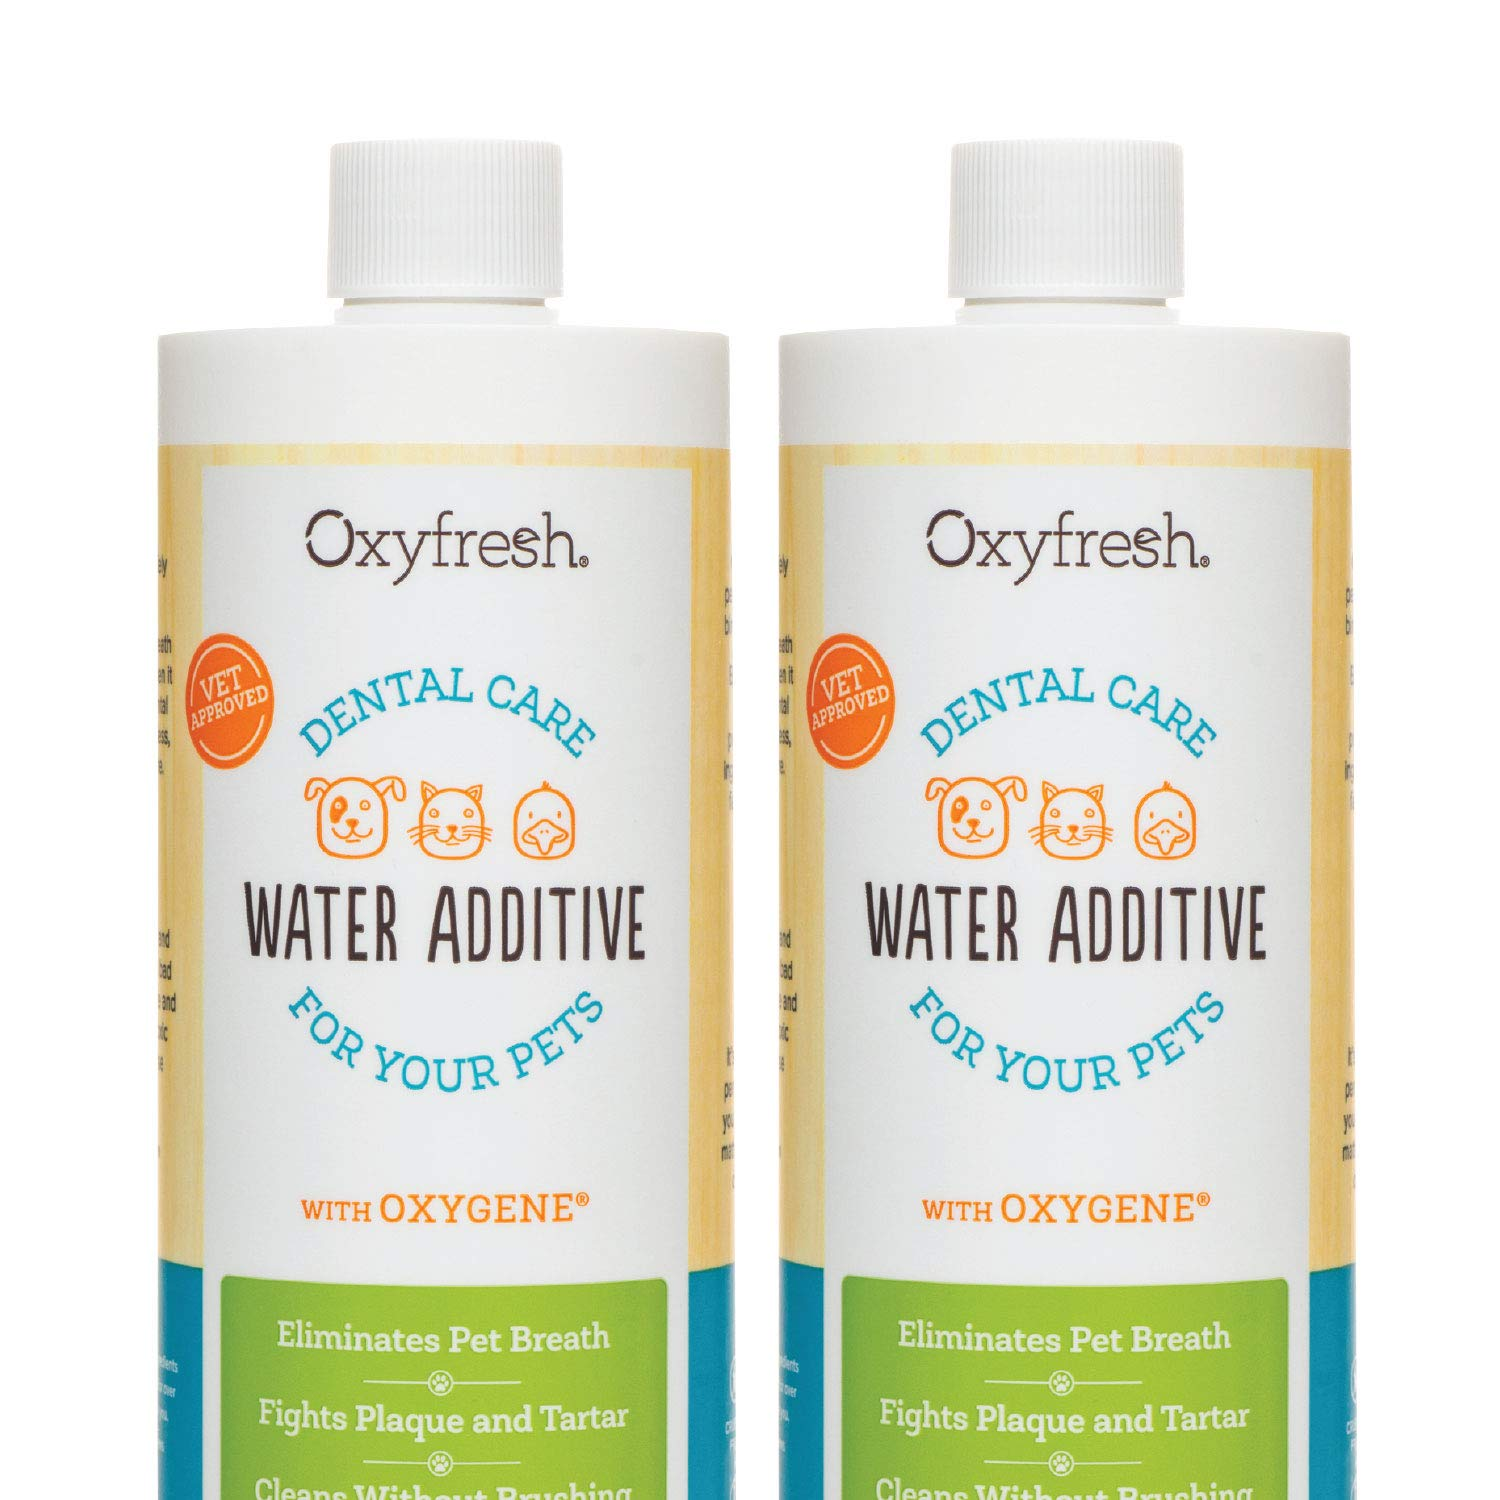 Oxyfresh Premium Pet Dental Care Solution Pet Water Additive: Best Way to Eliminate Bad Dog Breath and Cat Breath - Fights Tartar and Plaque - So Easy, Just Add to Water.